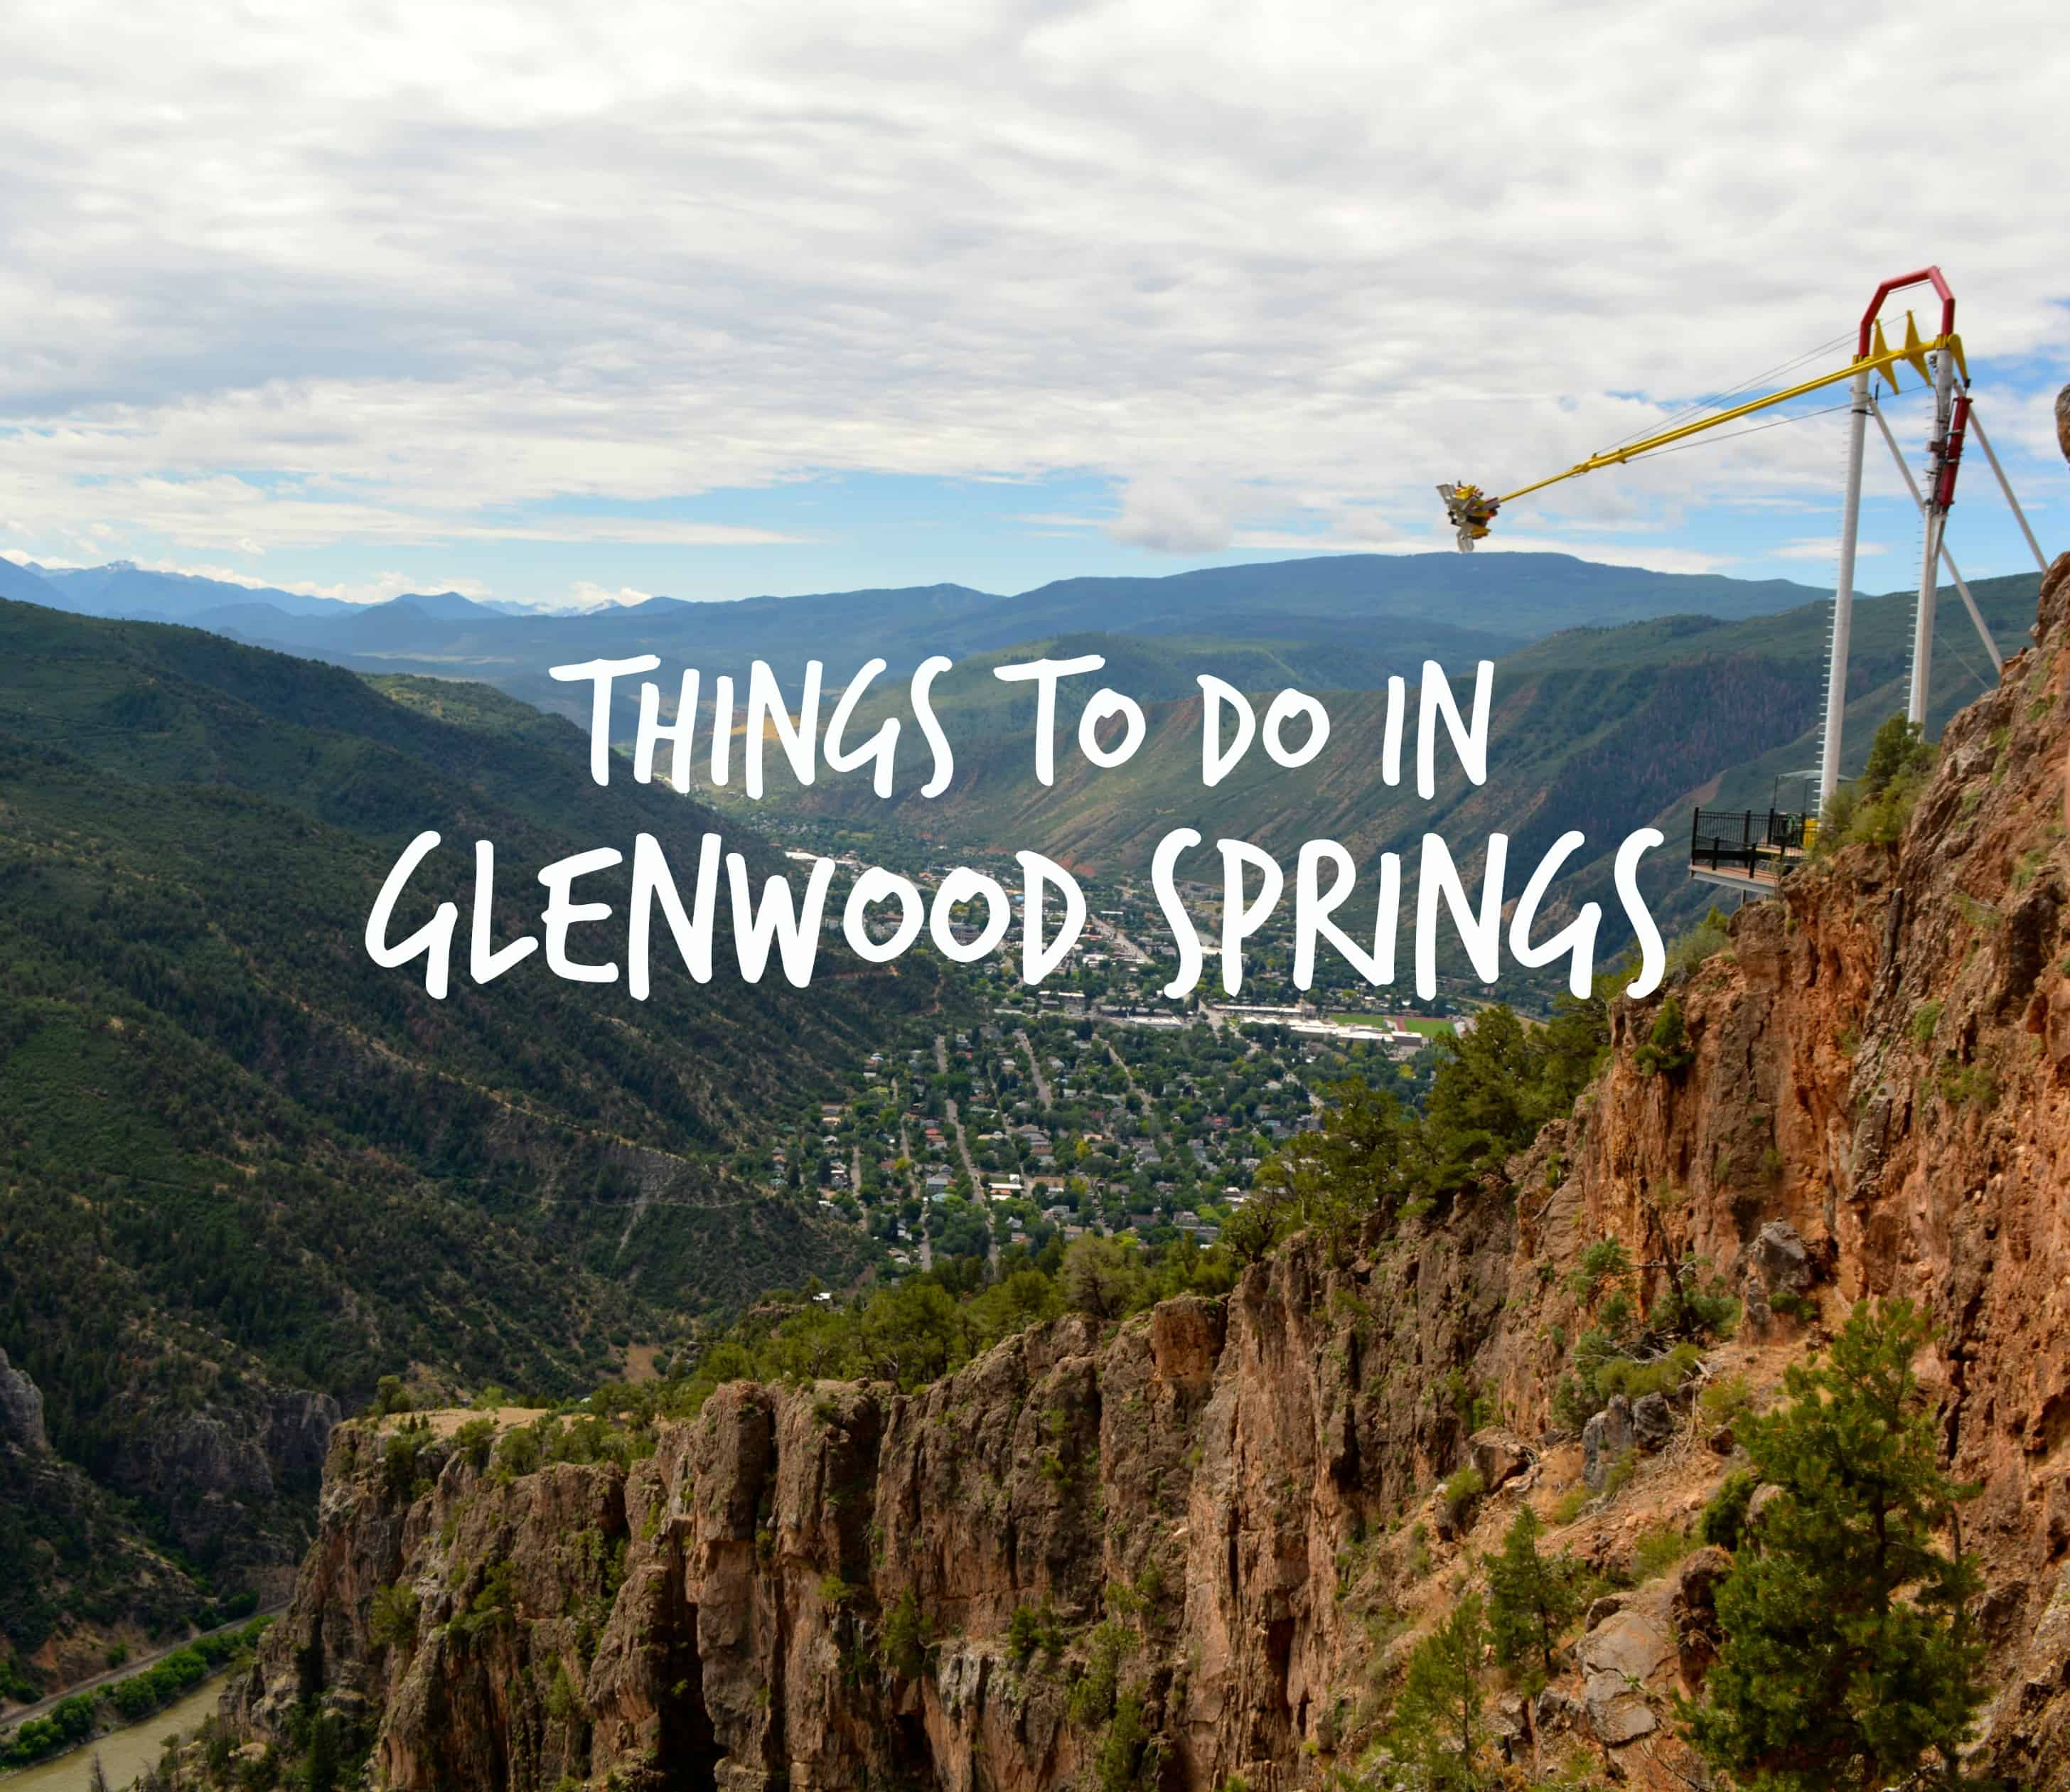 Top three things to do in glenwood springs for Best things to do in nyc with family